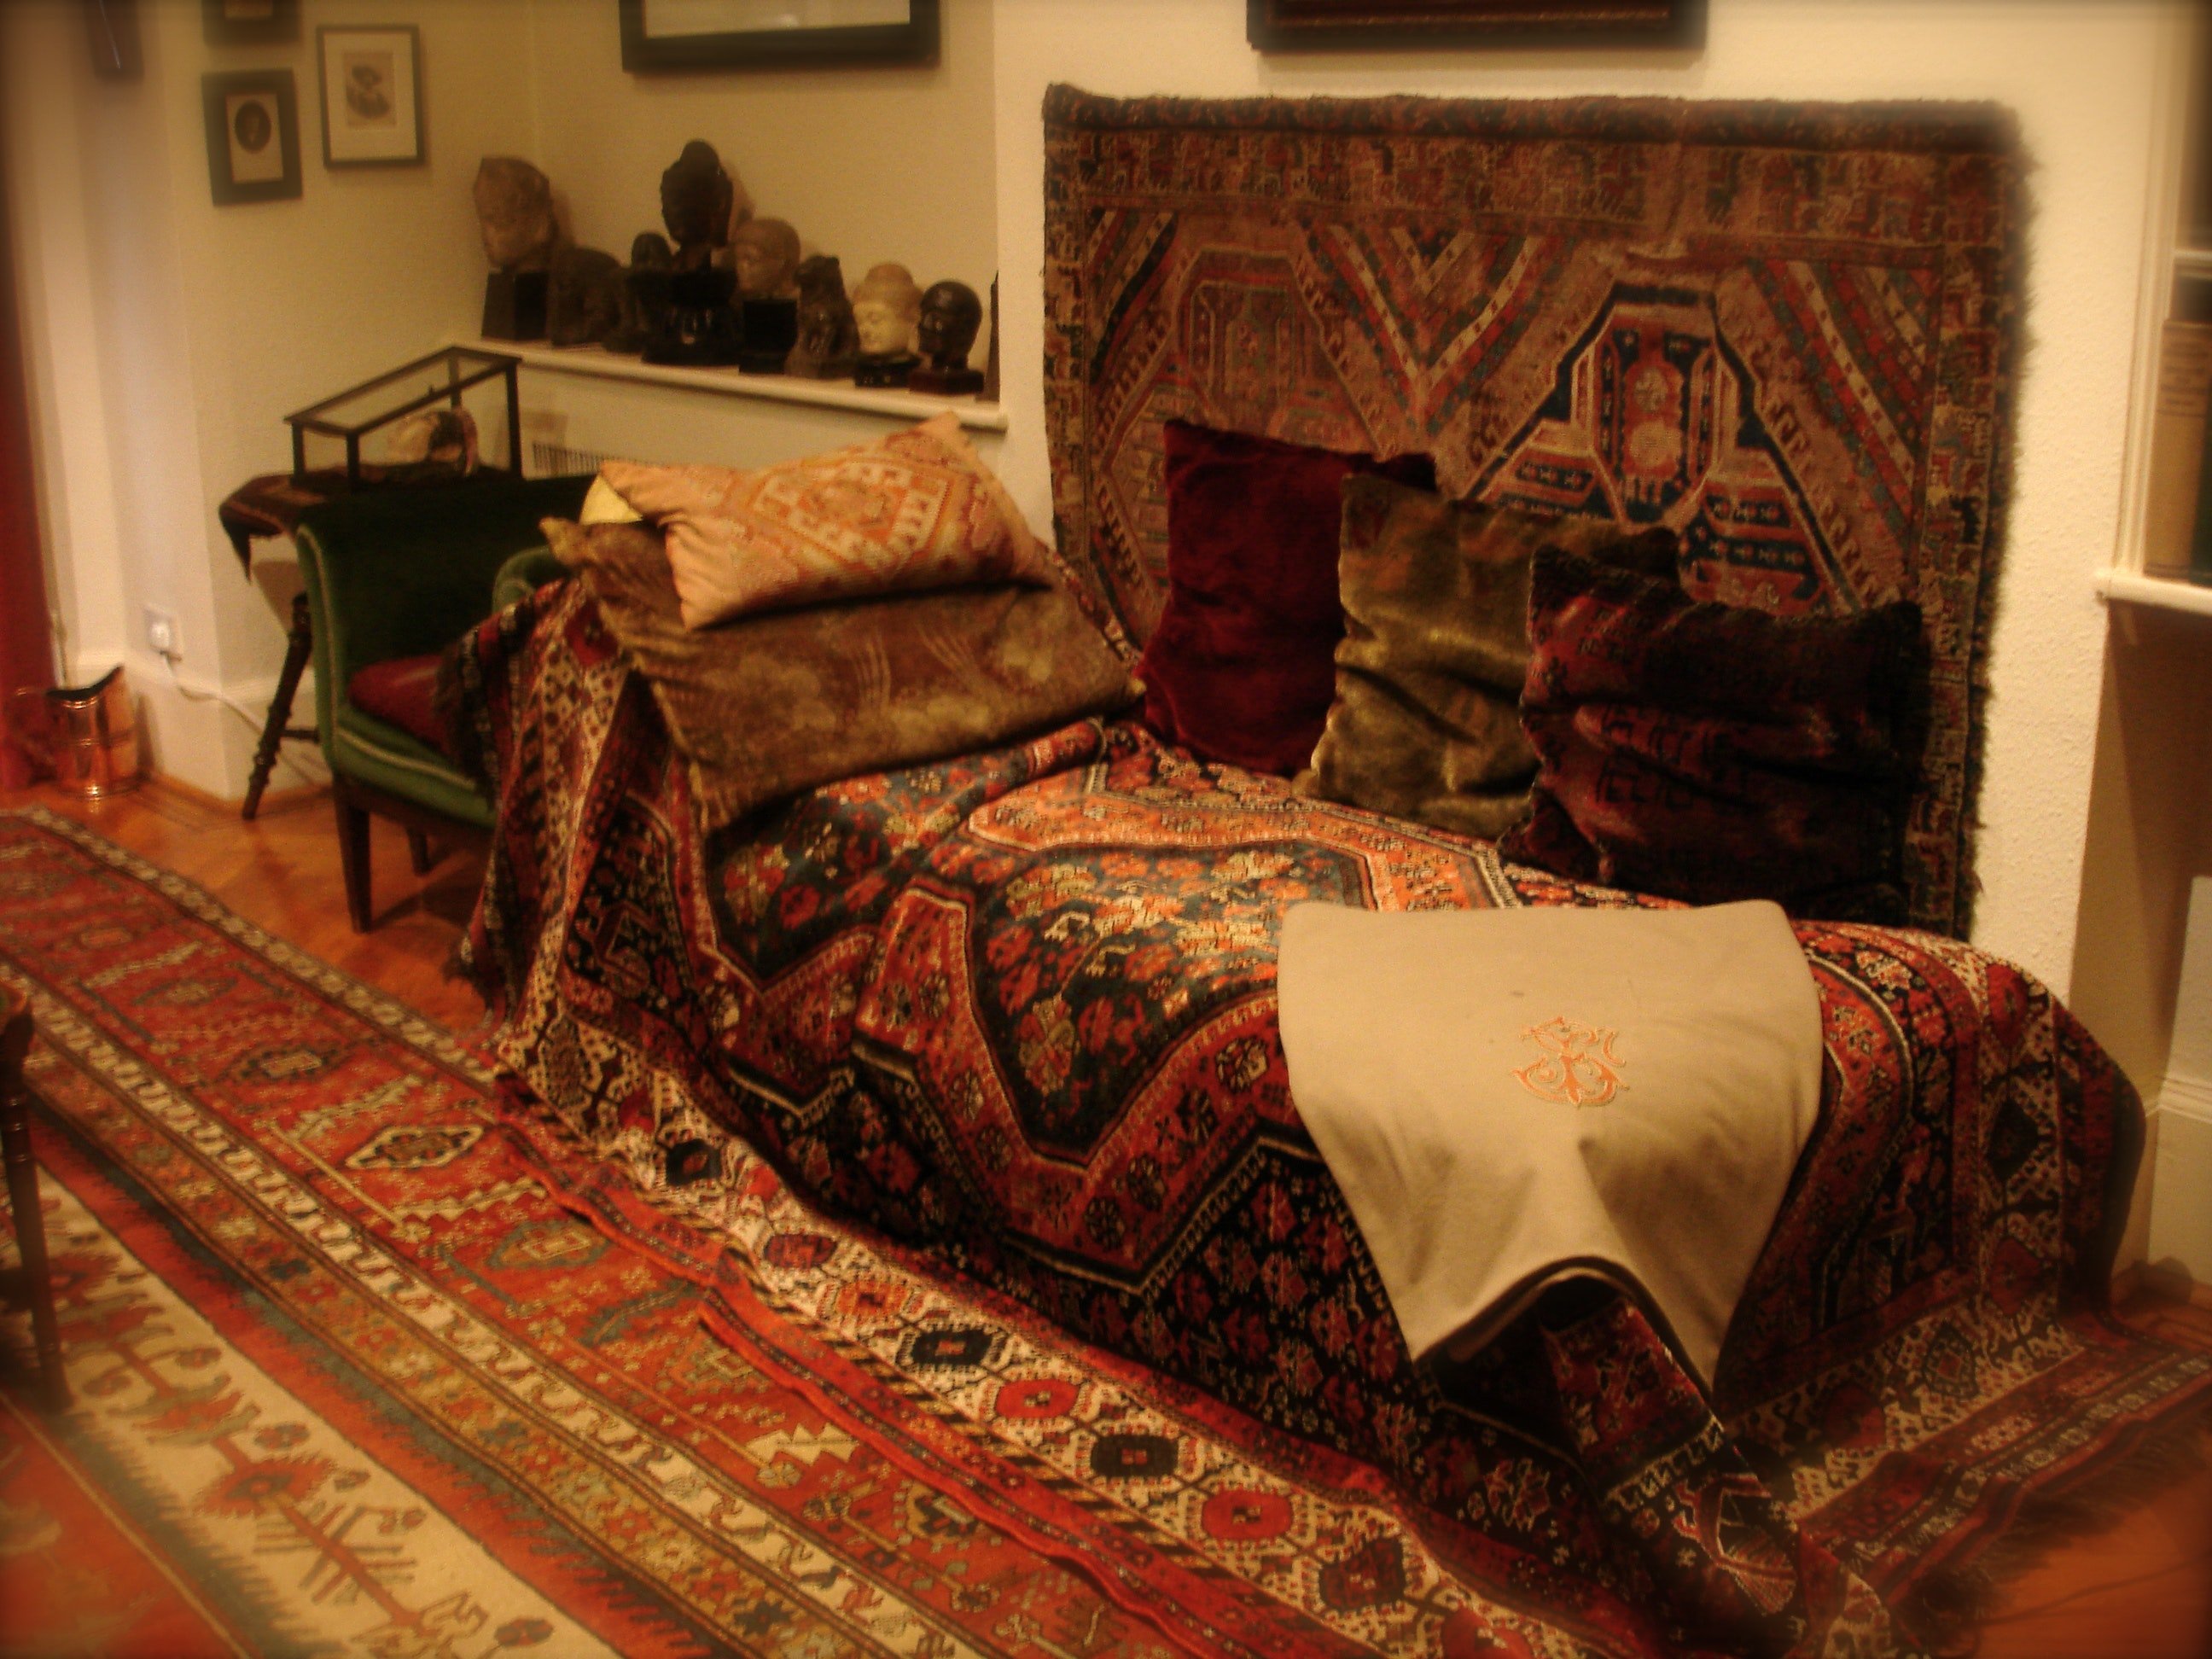 Stunning Freud us original couch as photographed in his home in London Photo Robert Huffstutter